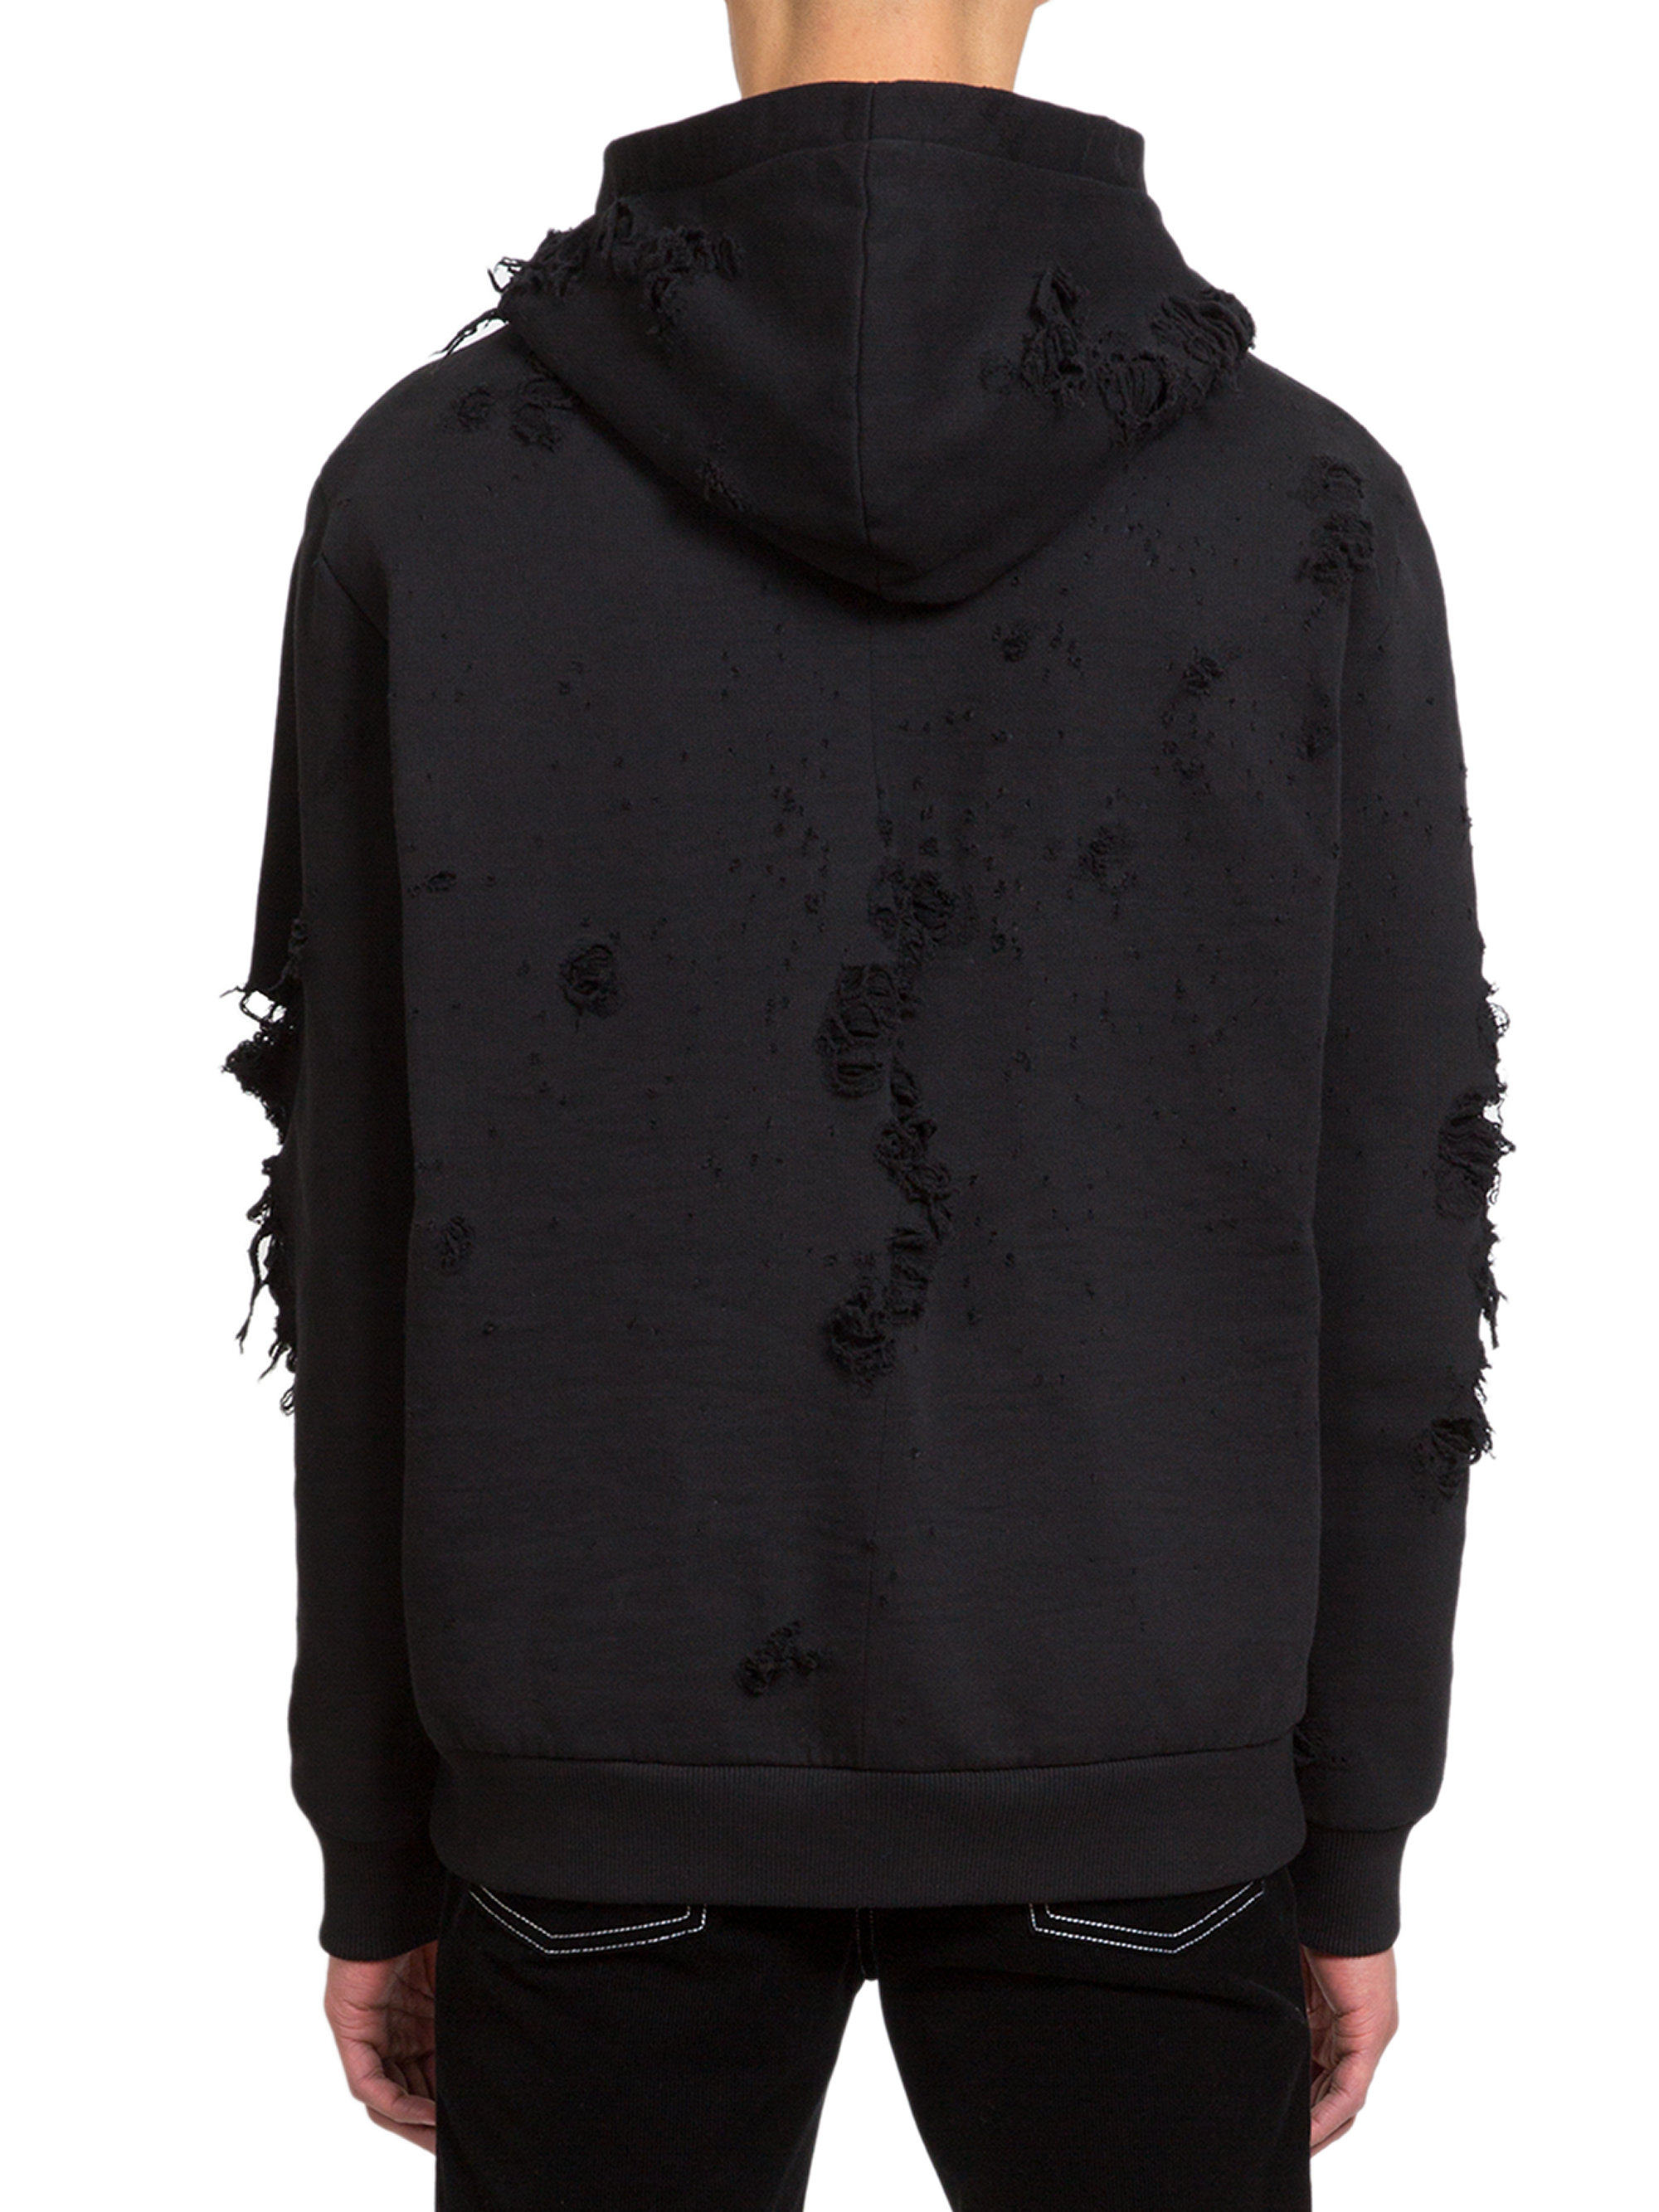 Lyst givenchy logo hole hooded sweatshirt in black for men for Mens dress shirts with cufflink holes